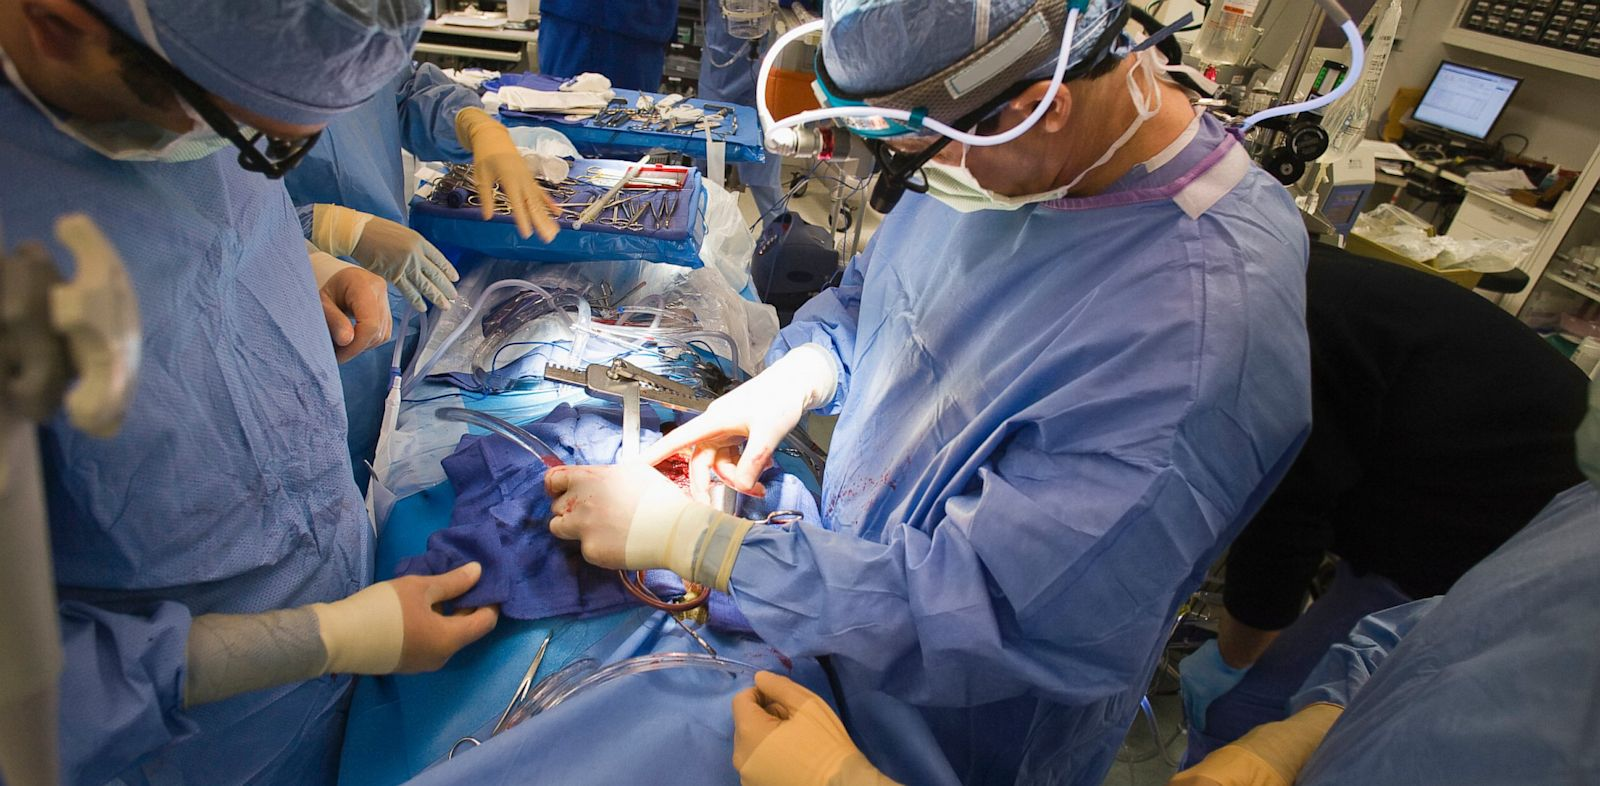 PHOTO: Doctors operating on patient